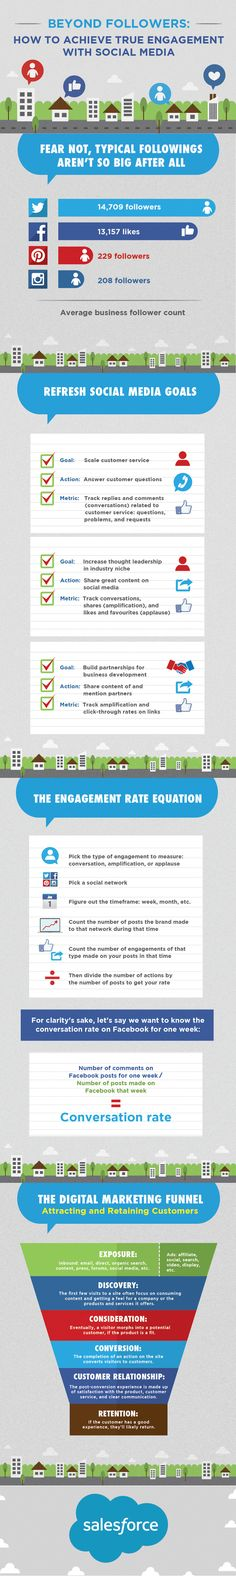 How to Achieve True Engagement With Social Media [INFOGRAPHIC]